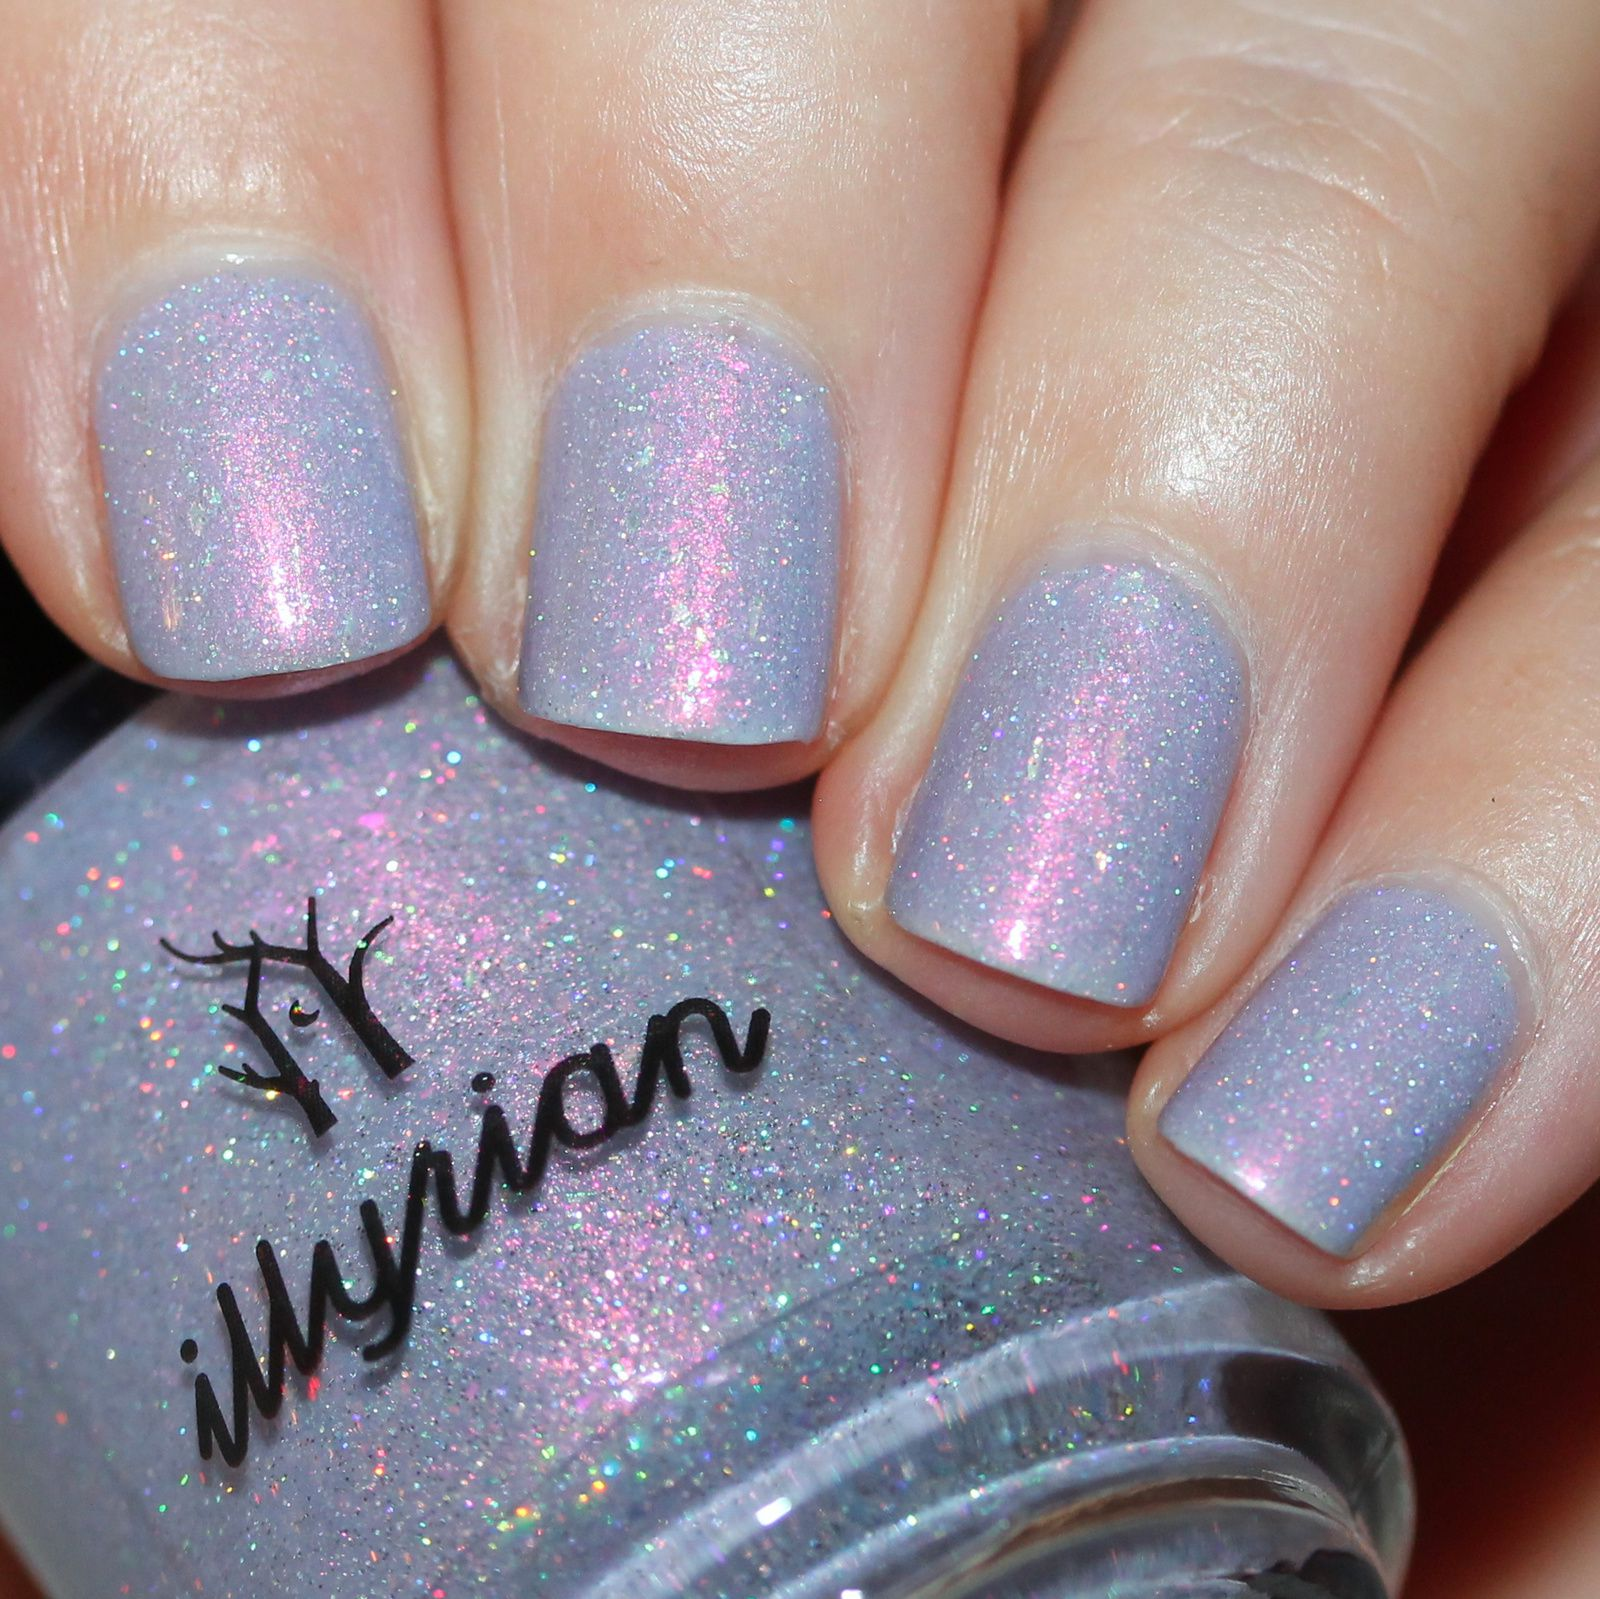 Sally Hansen Complete Care 4-in-1 Extra Moisturizing Nail Treatment / Illyrian Polish Love Potion / Native War Paints Hurry, Hurry!Top Coat